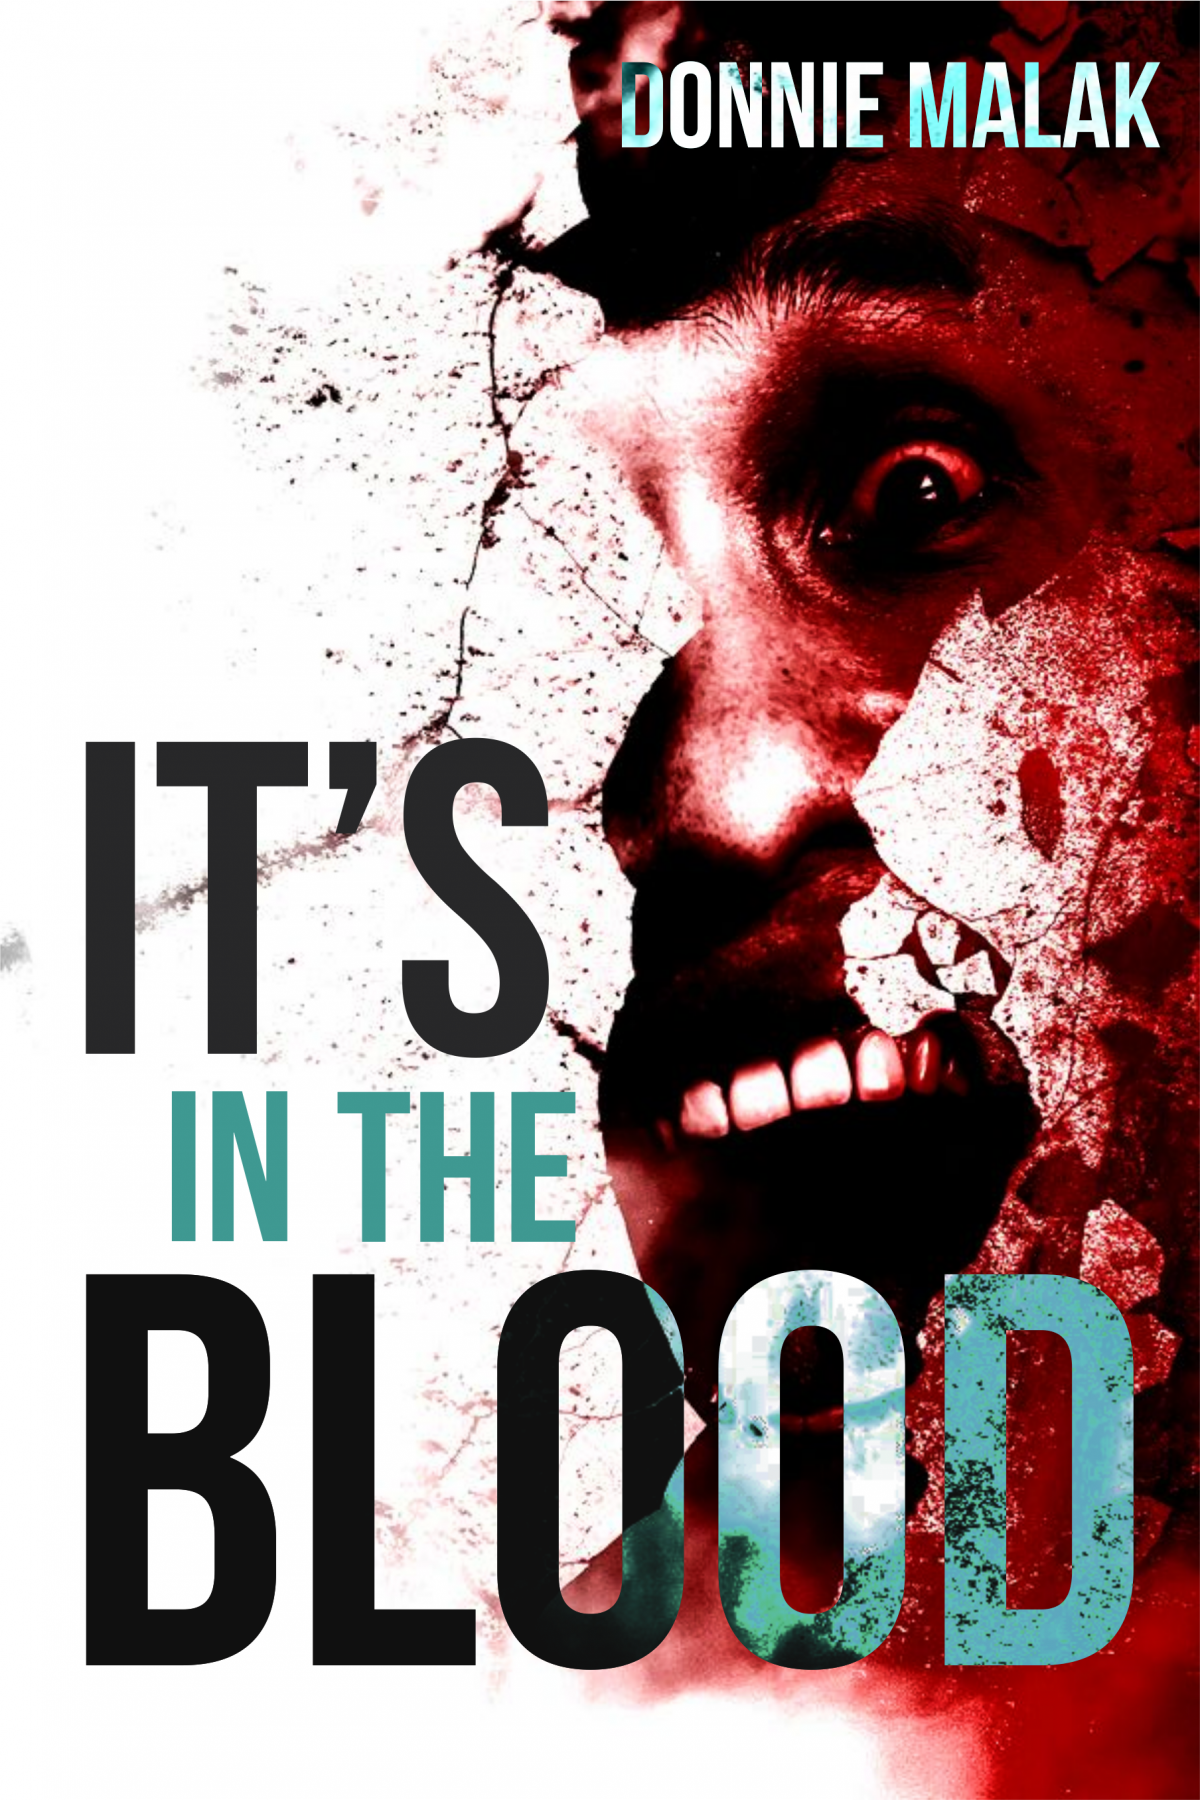 Book Covered In Blood : It s in the blood book cover designer